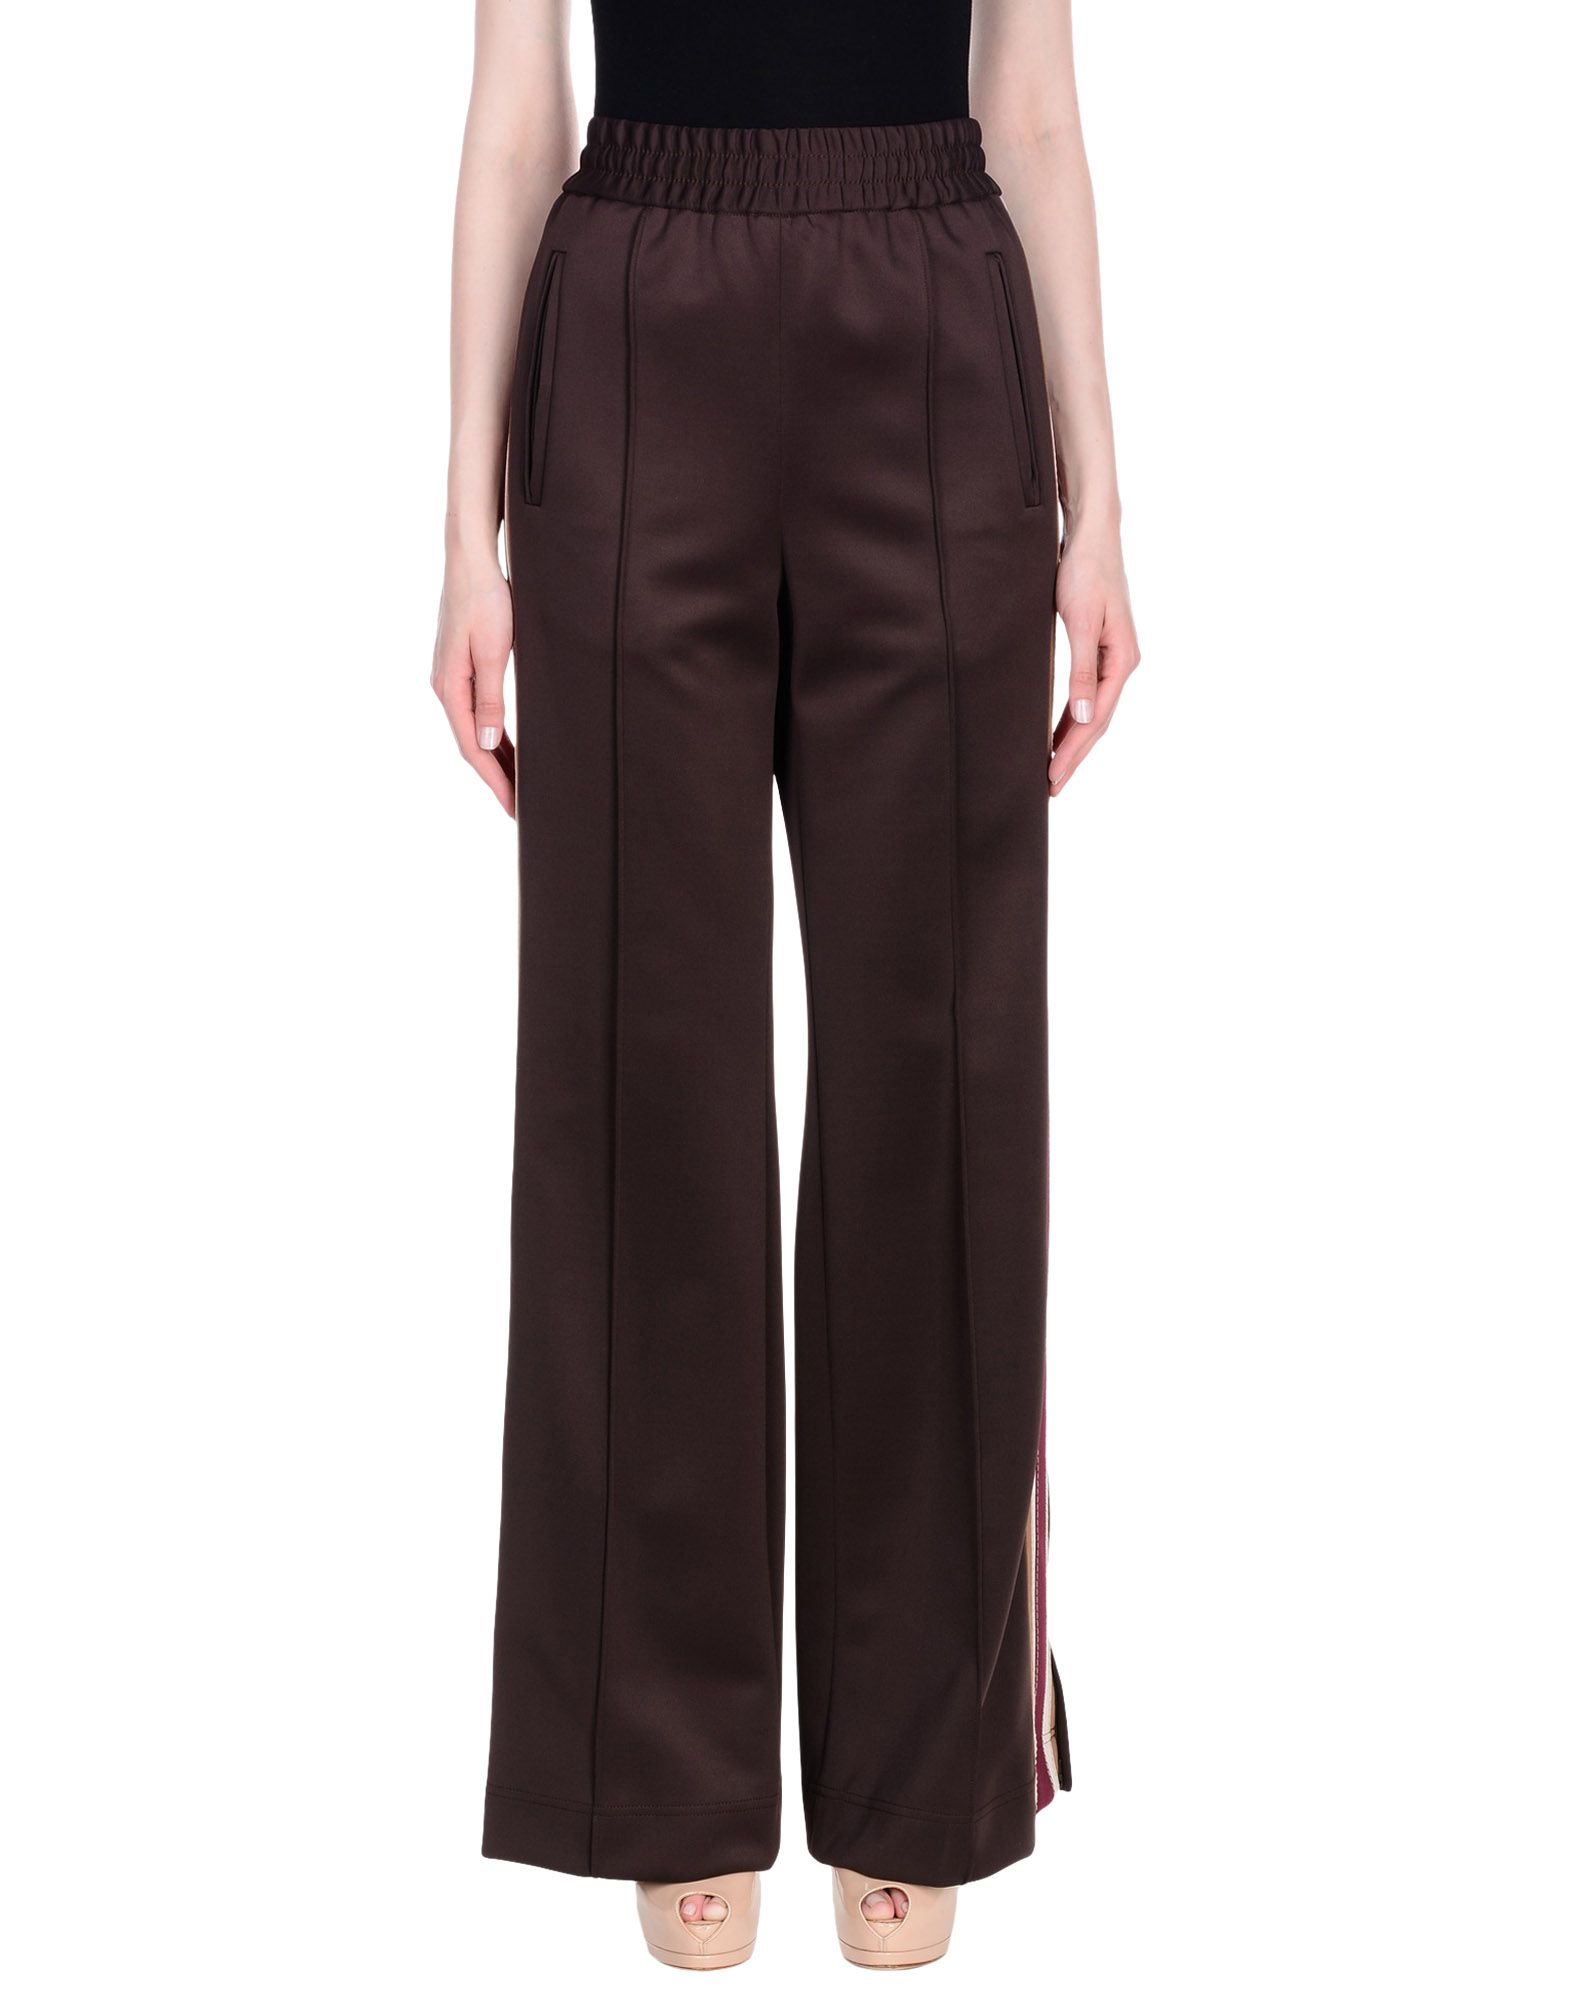 Pantalone Marc Jacobs Donna - Acquista online su CDiRC6